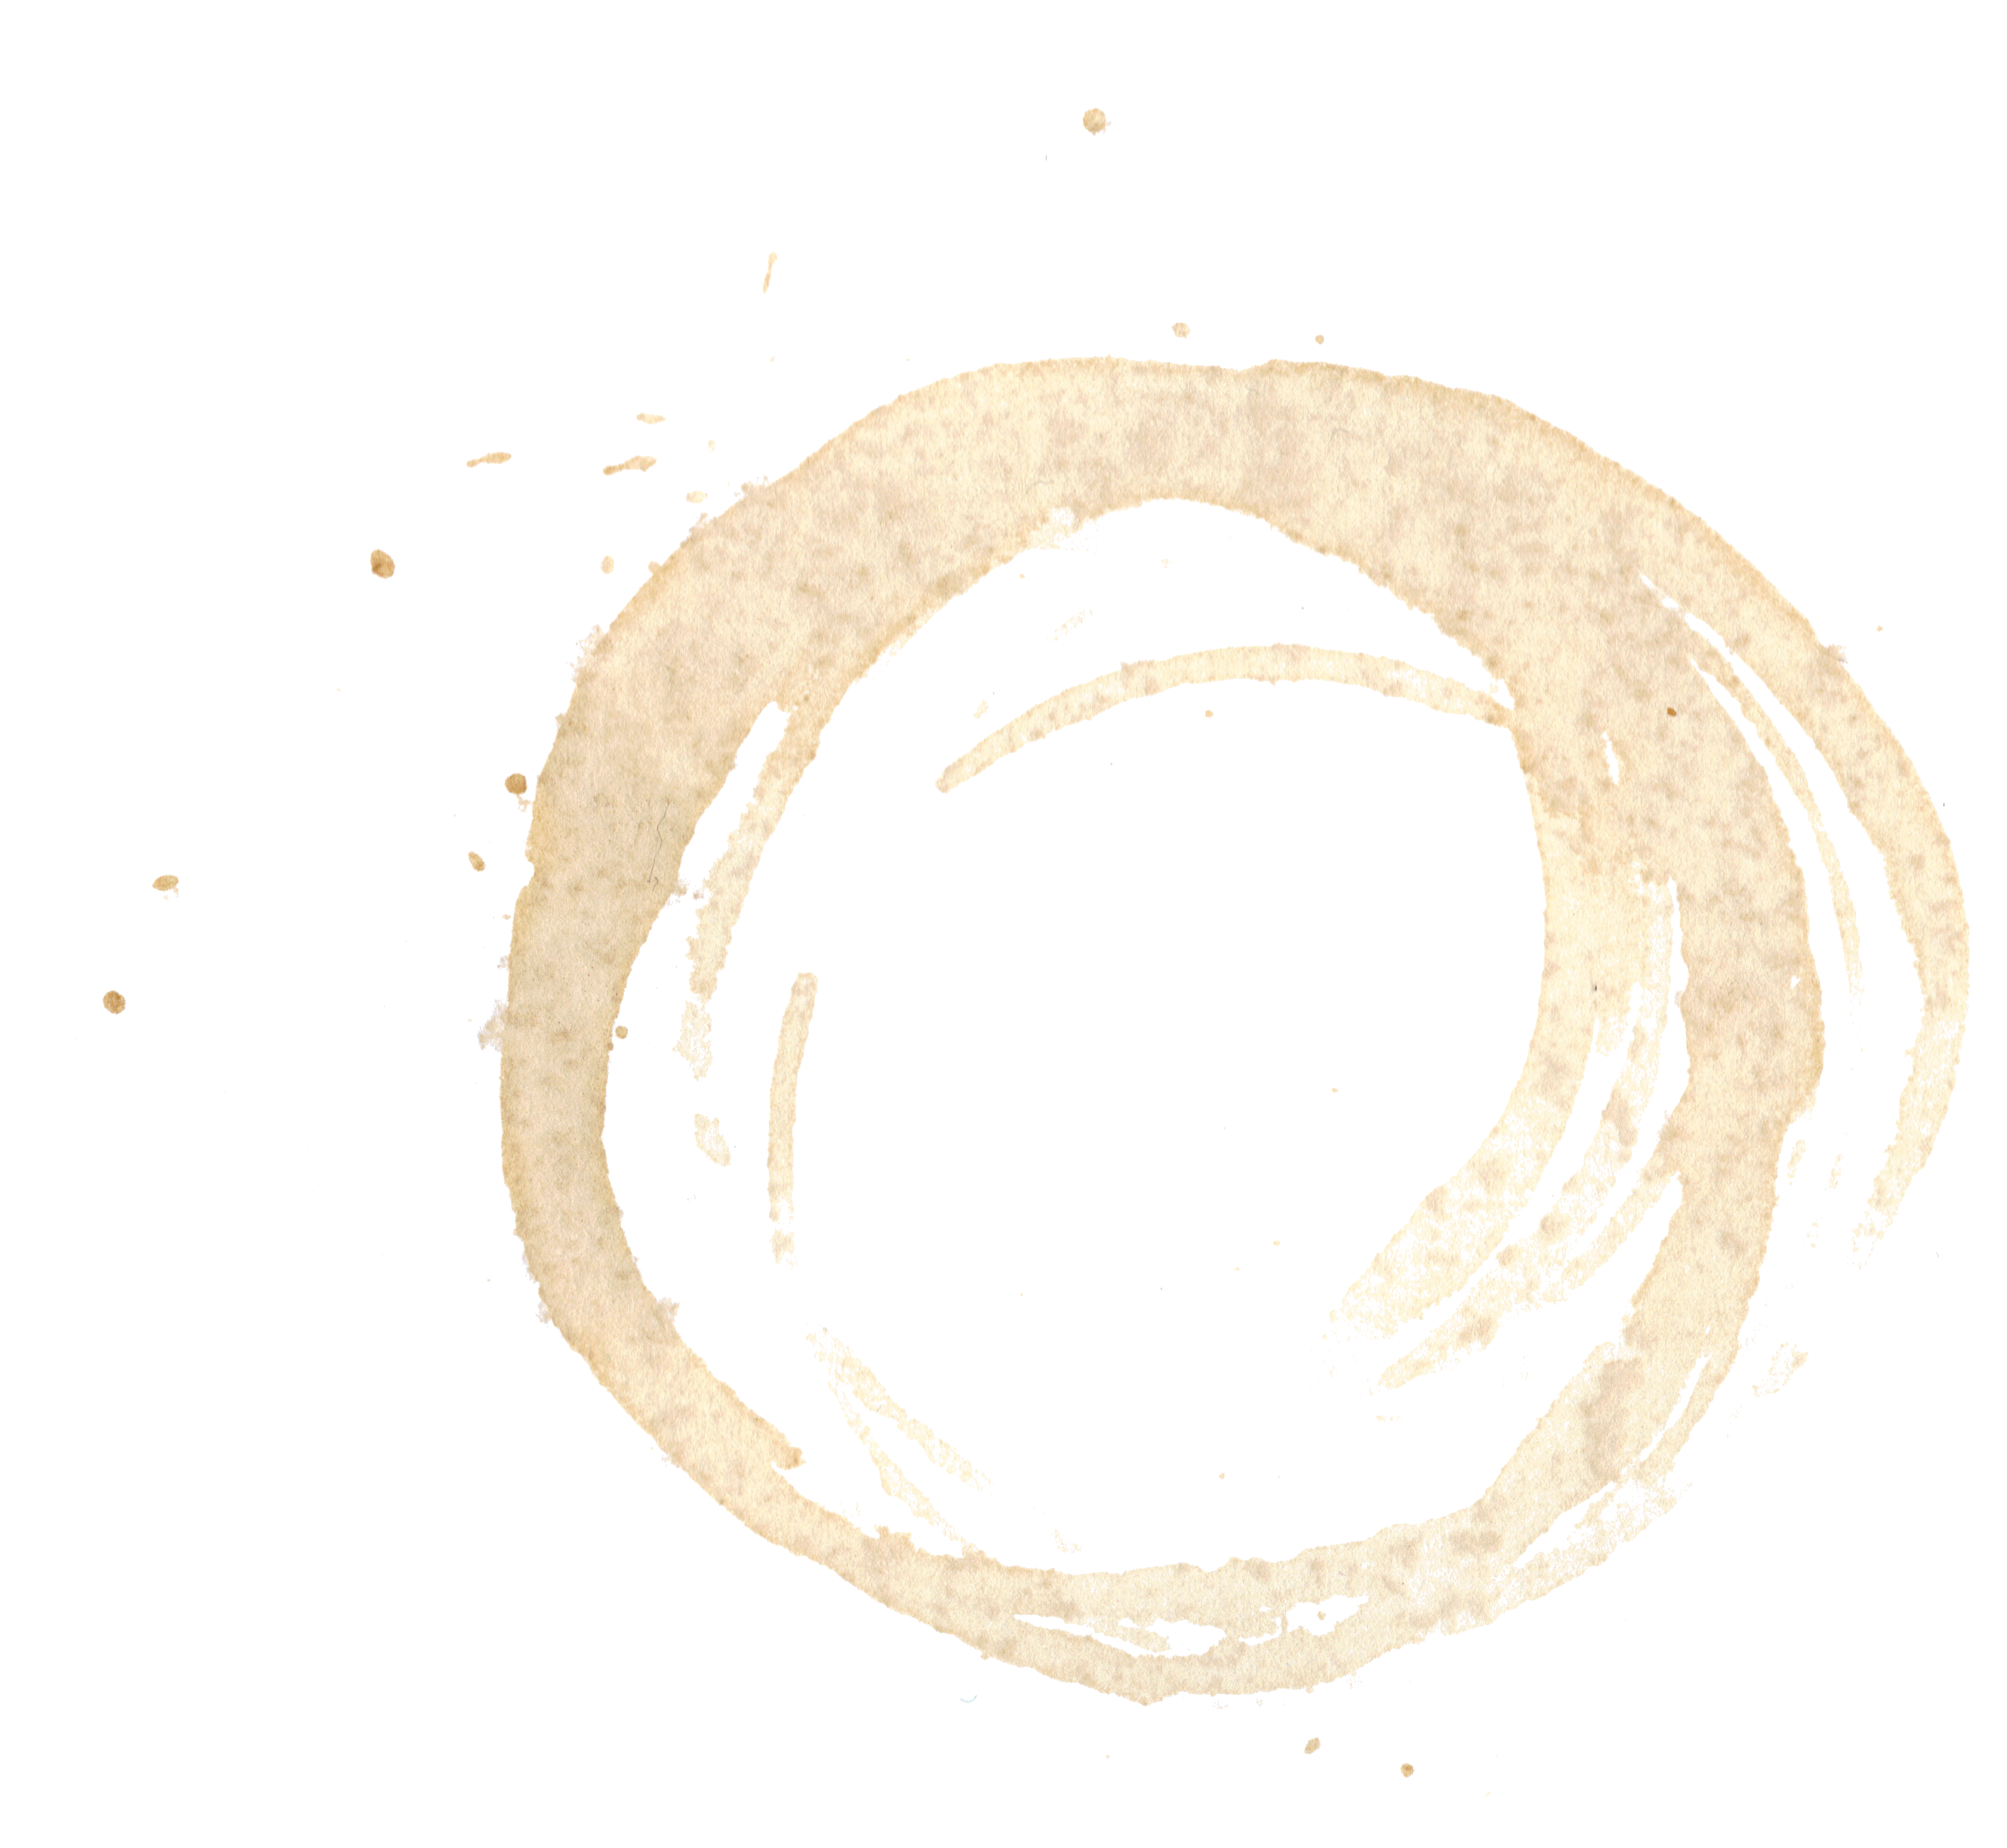 Coffee stain transparent png. Image onlygfx com